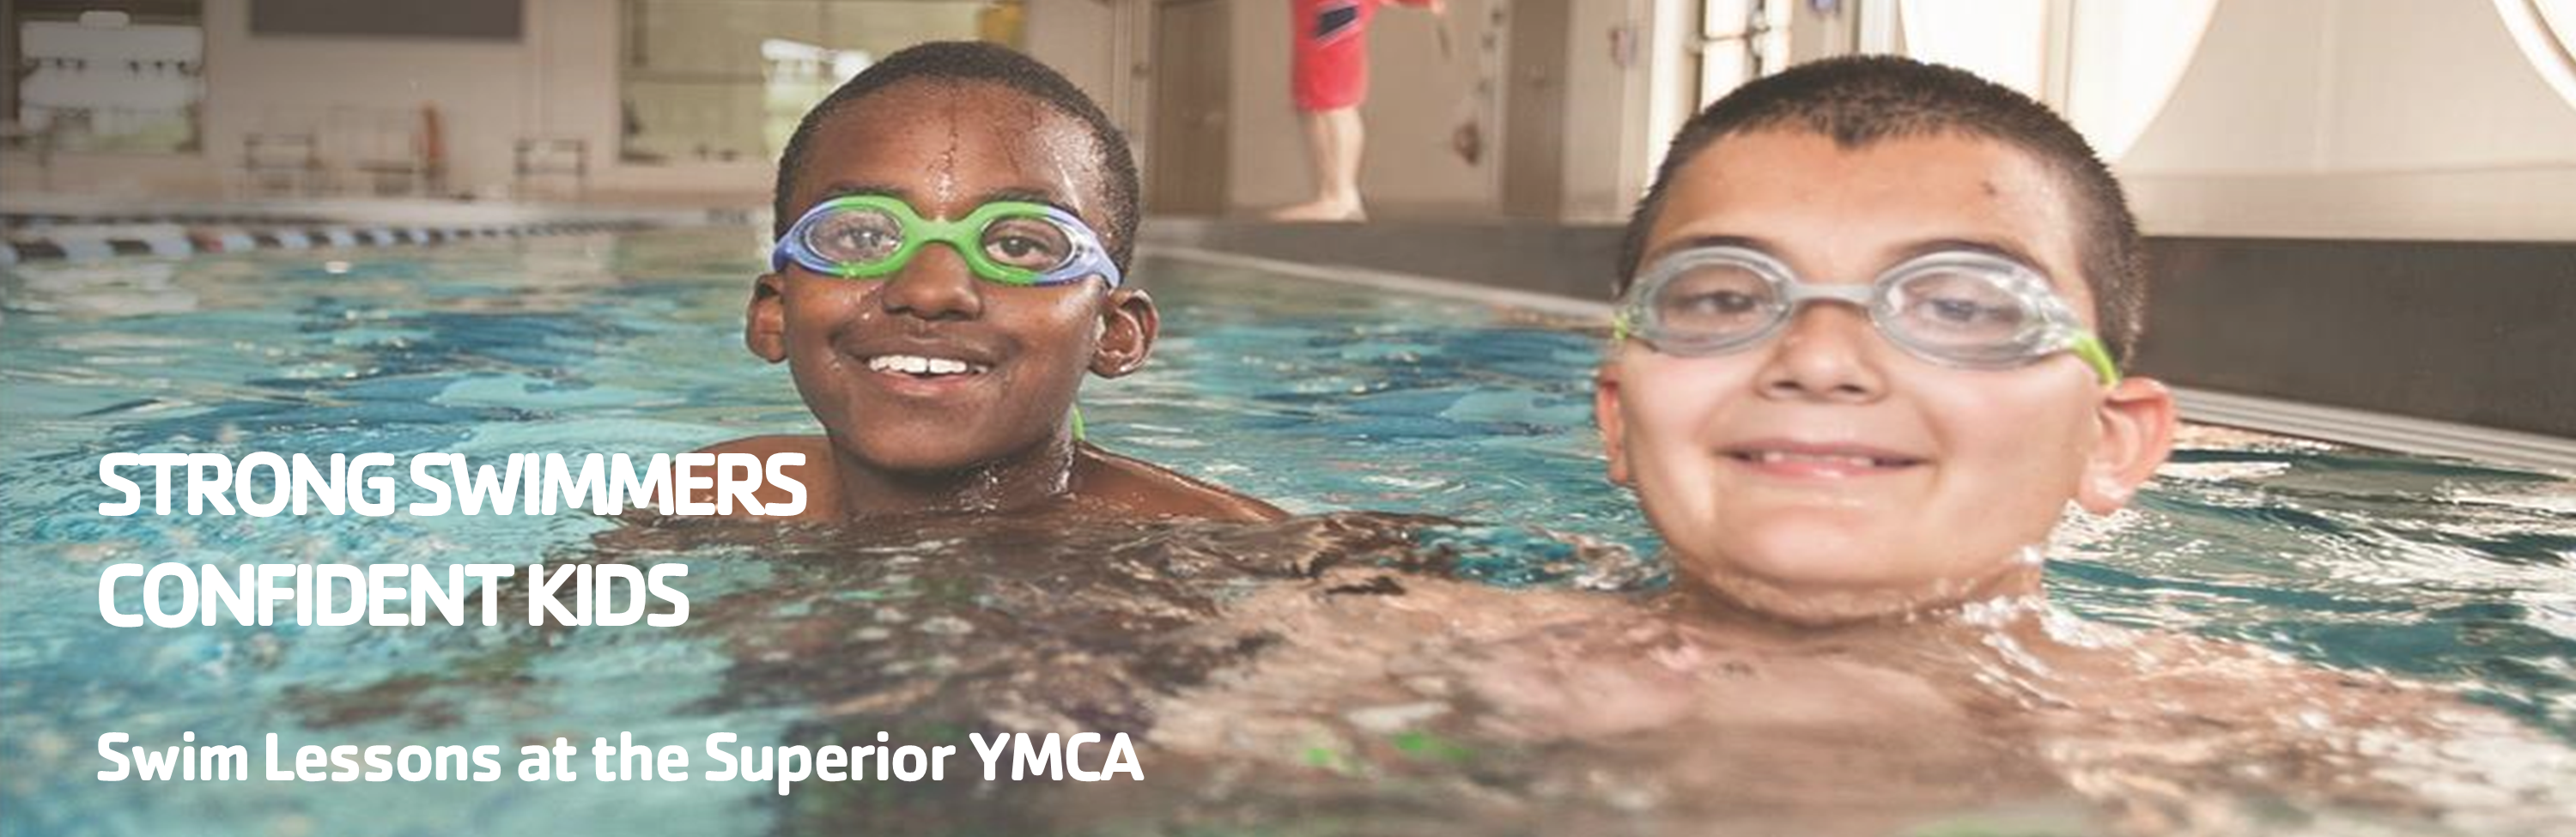 Swim lessons at the YMCA